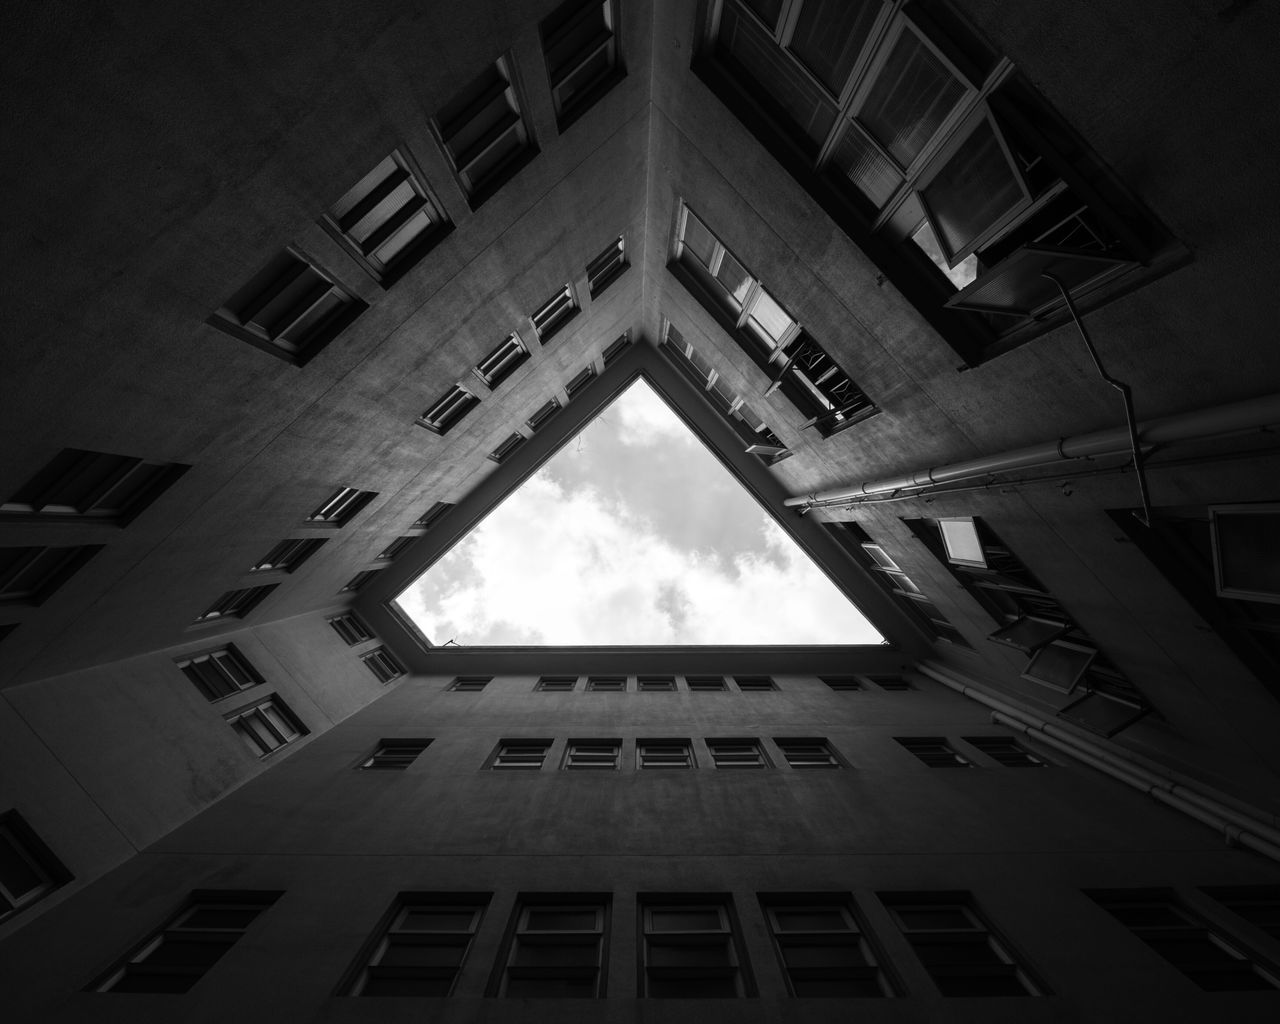 The Architect - 2017 EyeEm Awards Architecture Architecture_collection Built Structure Building Exterior Building Blackandwhite Black And White Low Angle View Indoors  EyeEm EyeEm Best Shots Taking Photos Photooftheday Photographer EyeEm Gallery Explore Nikon Art Is Everywhere Day Picoftheday Light Urban No People Eye4photography